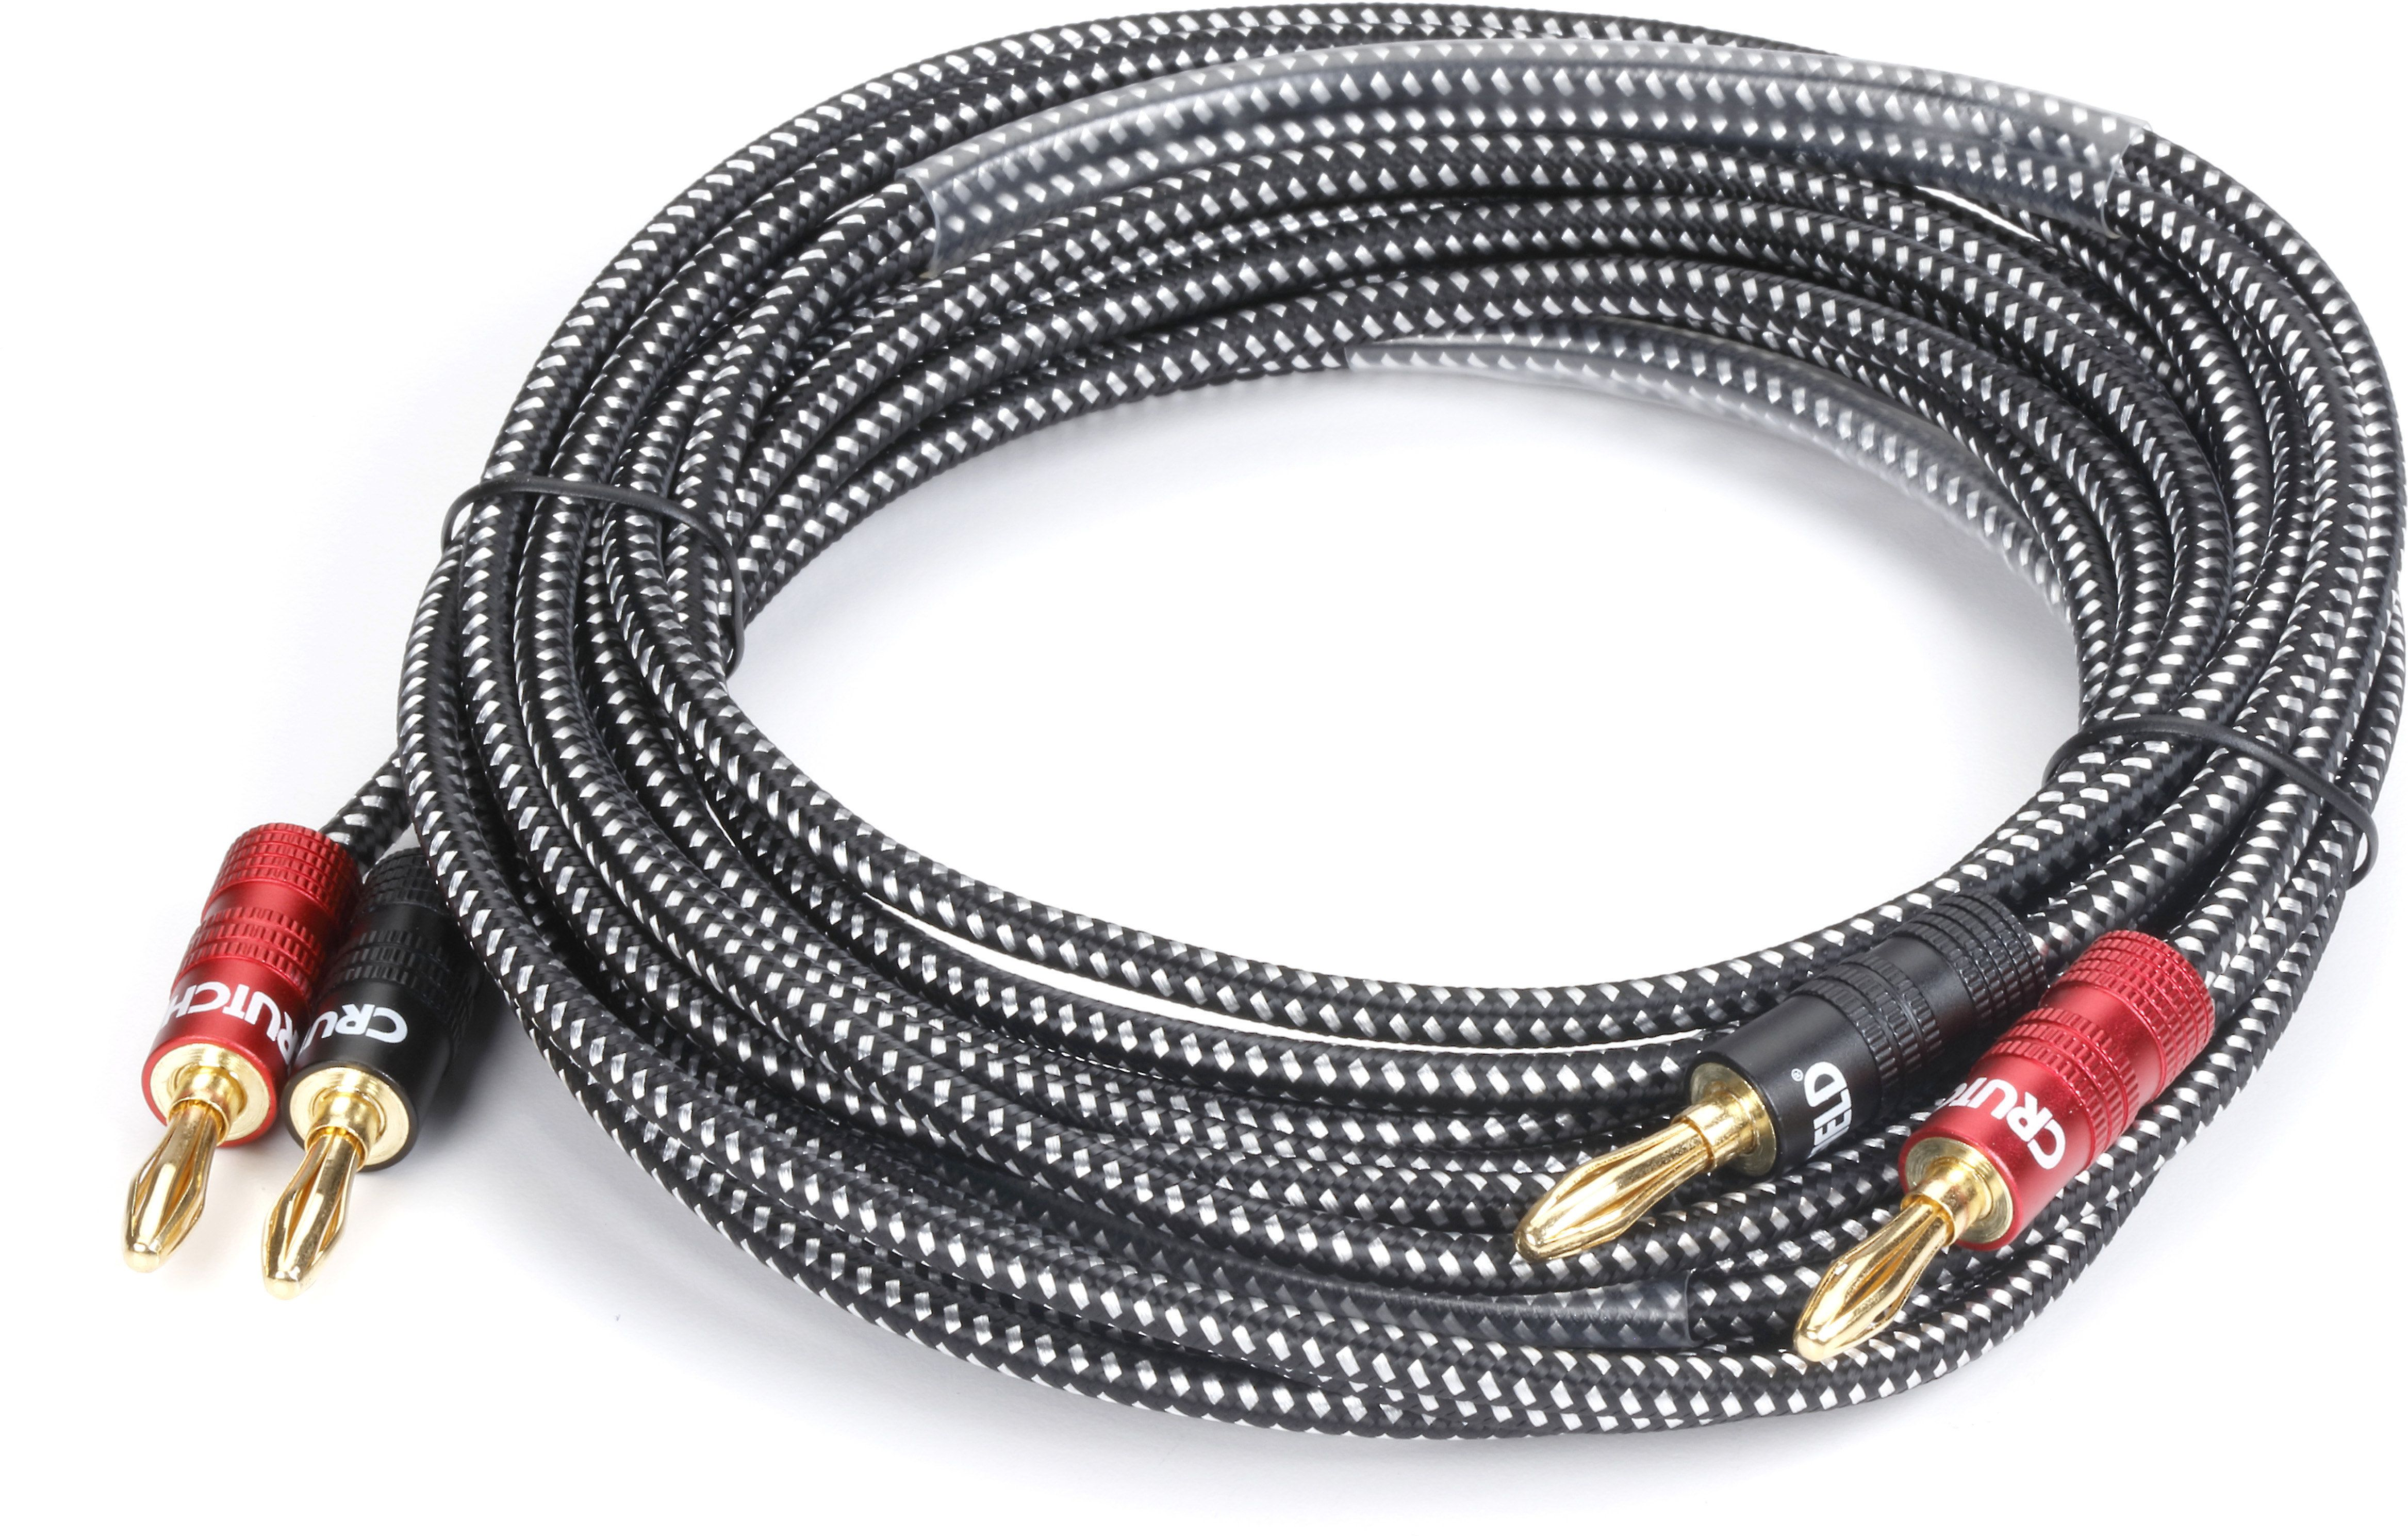 hight resolution of our crutchfield speaker wire with pre attached banana plugs provides an easy secure connection between your speakers and receiver or amplifier the